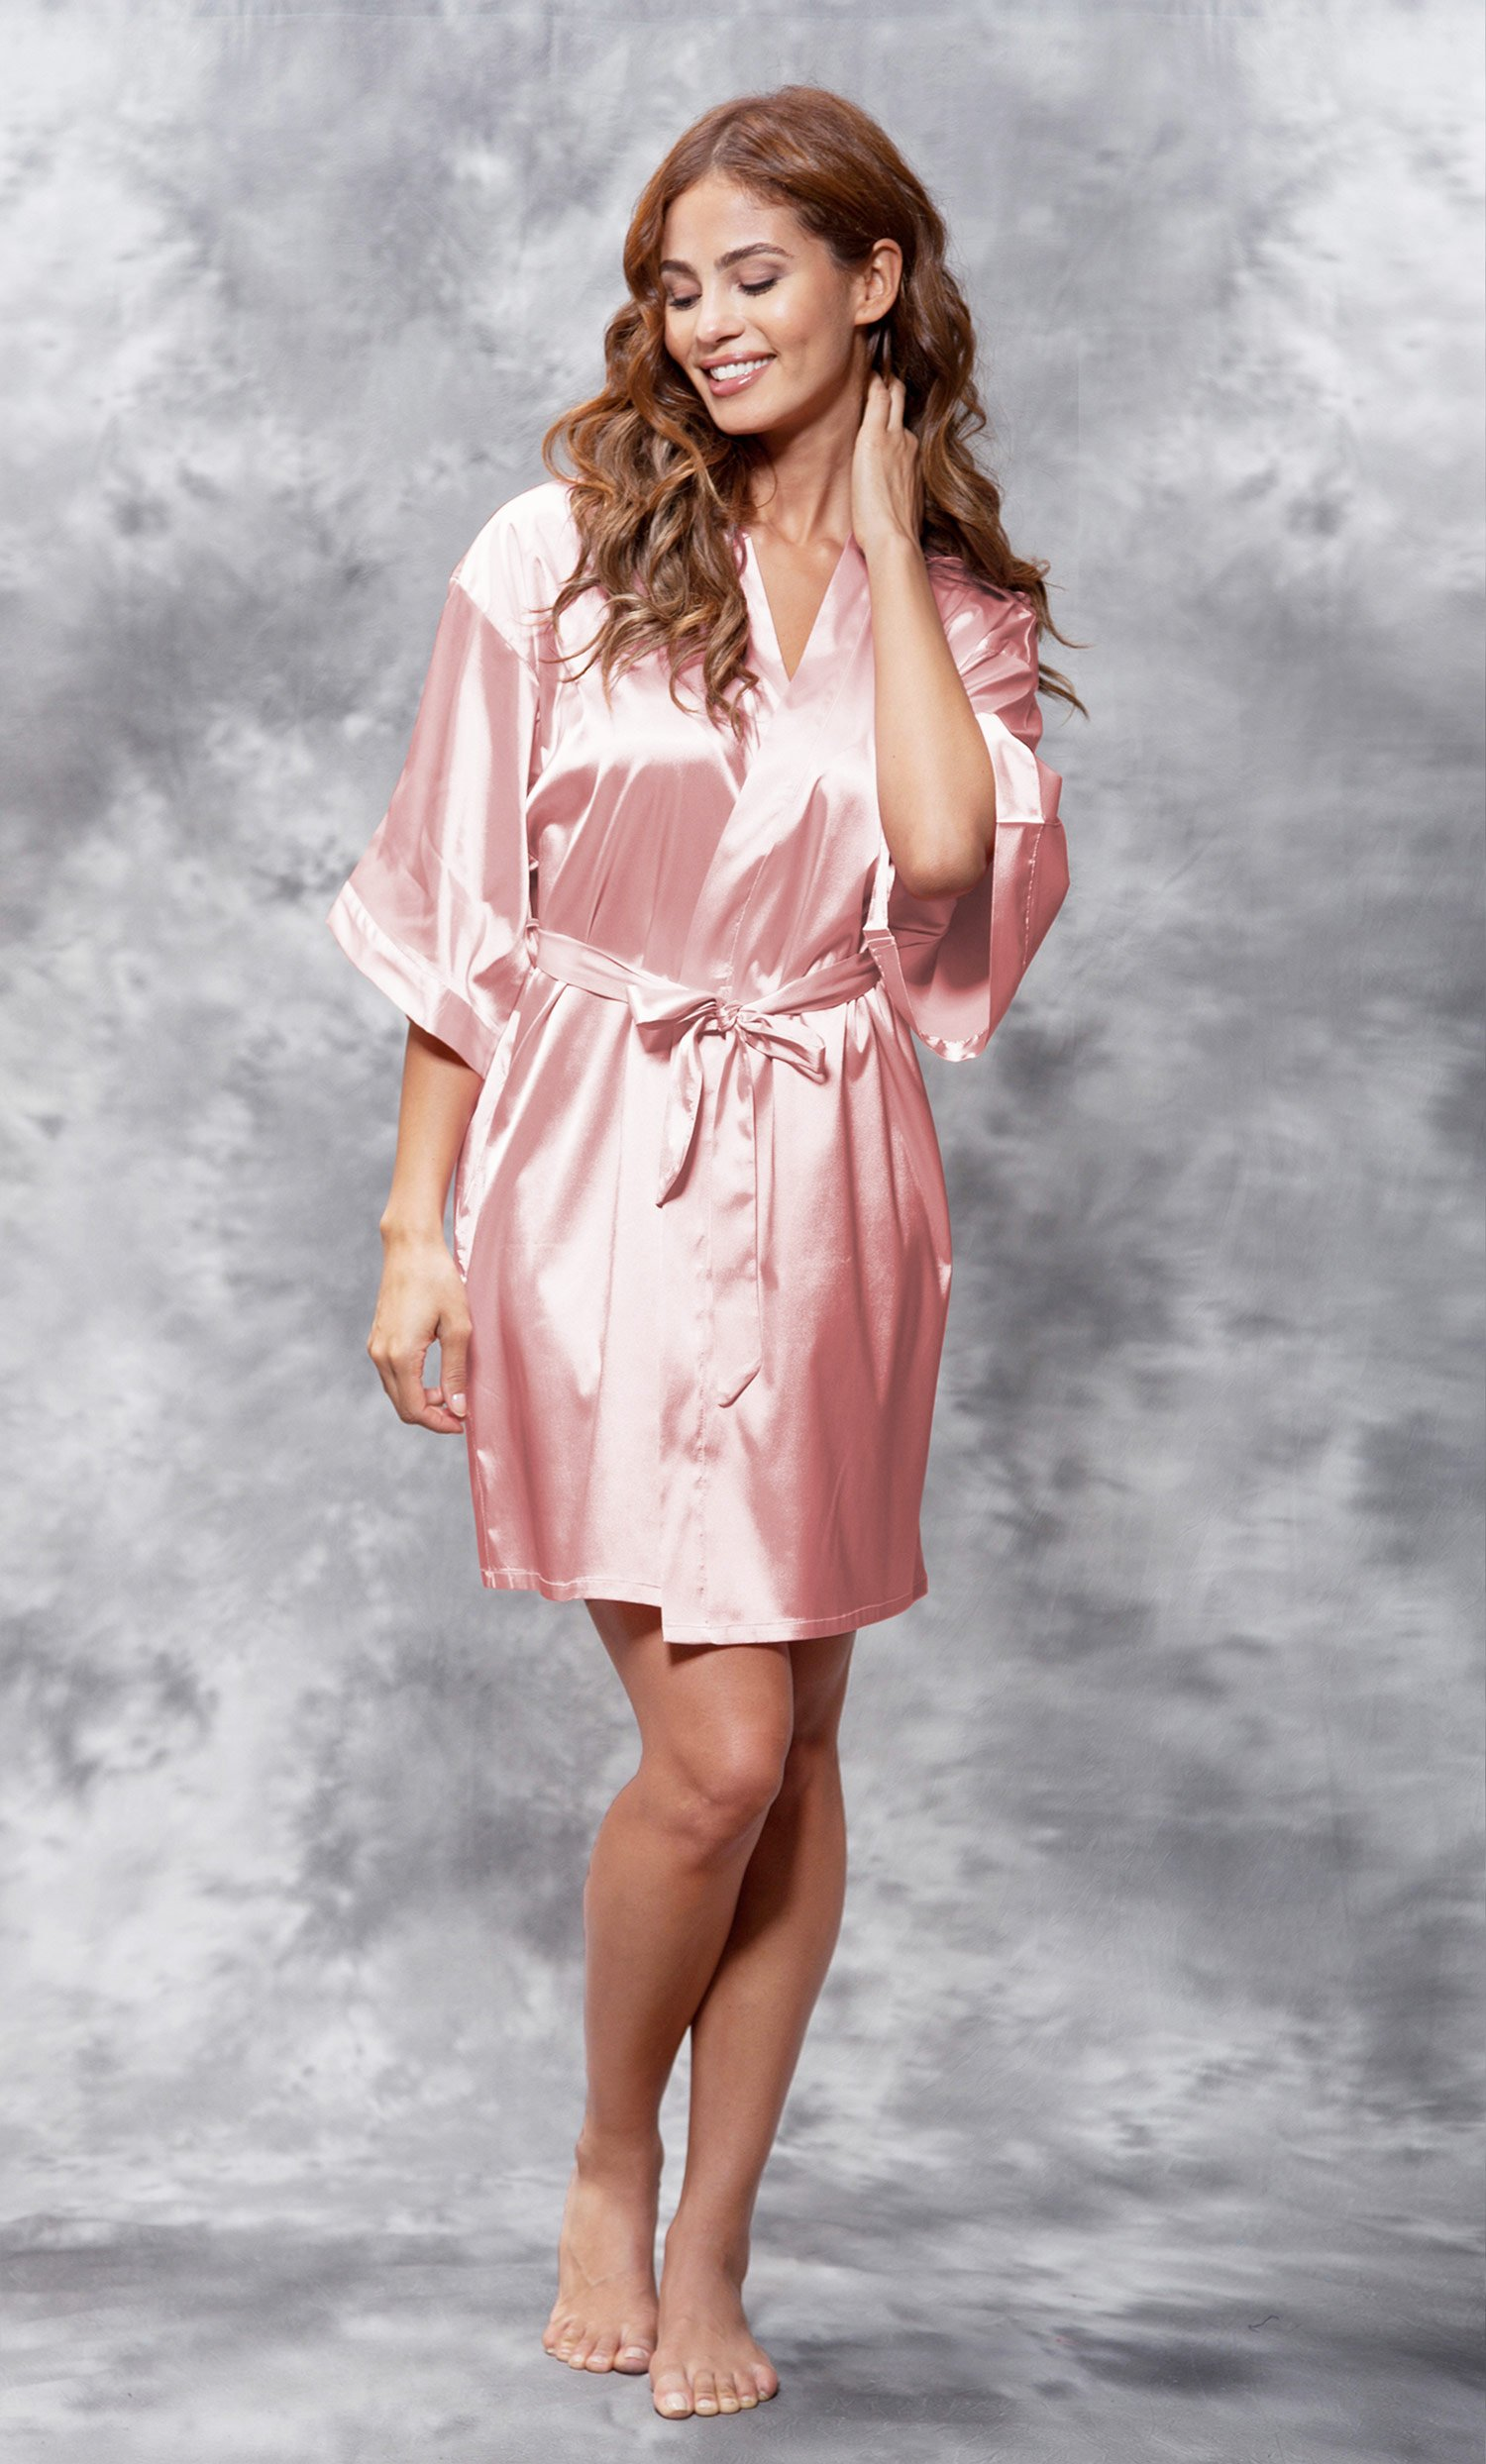 Matron of Honor Clear Rhinestone Satin Kimono Light Pink Short Robe-Robemart.com